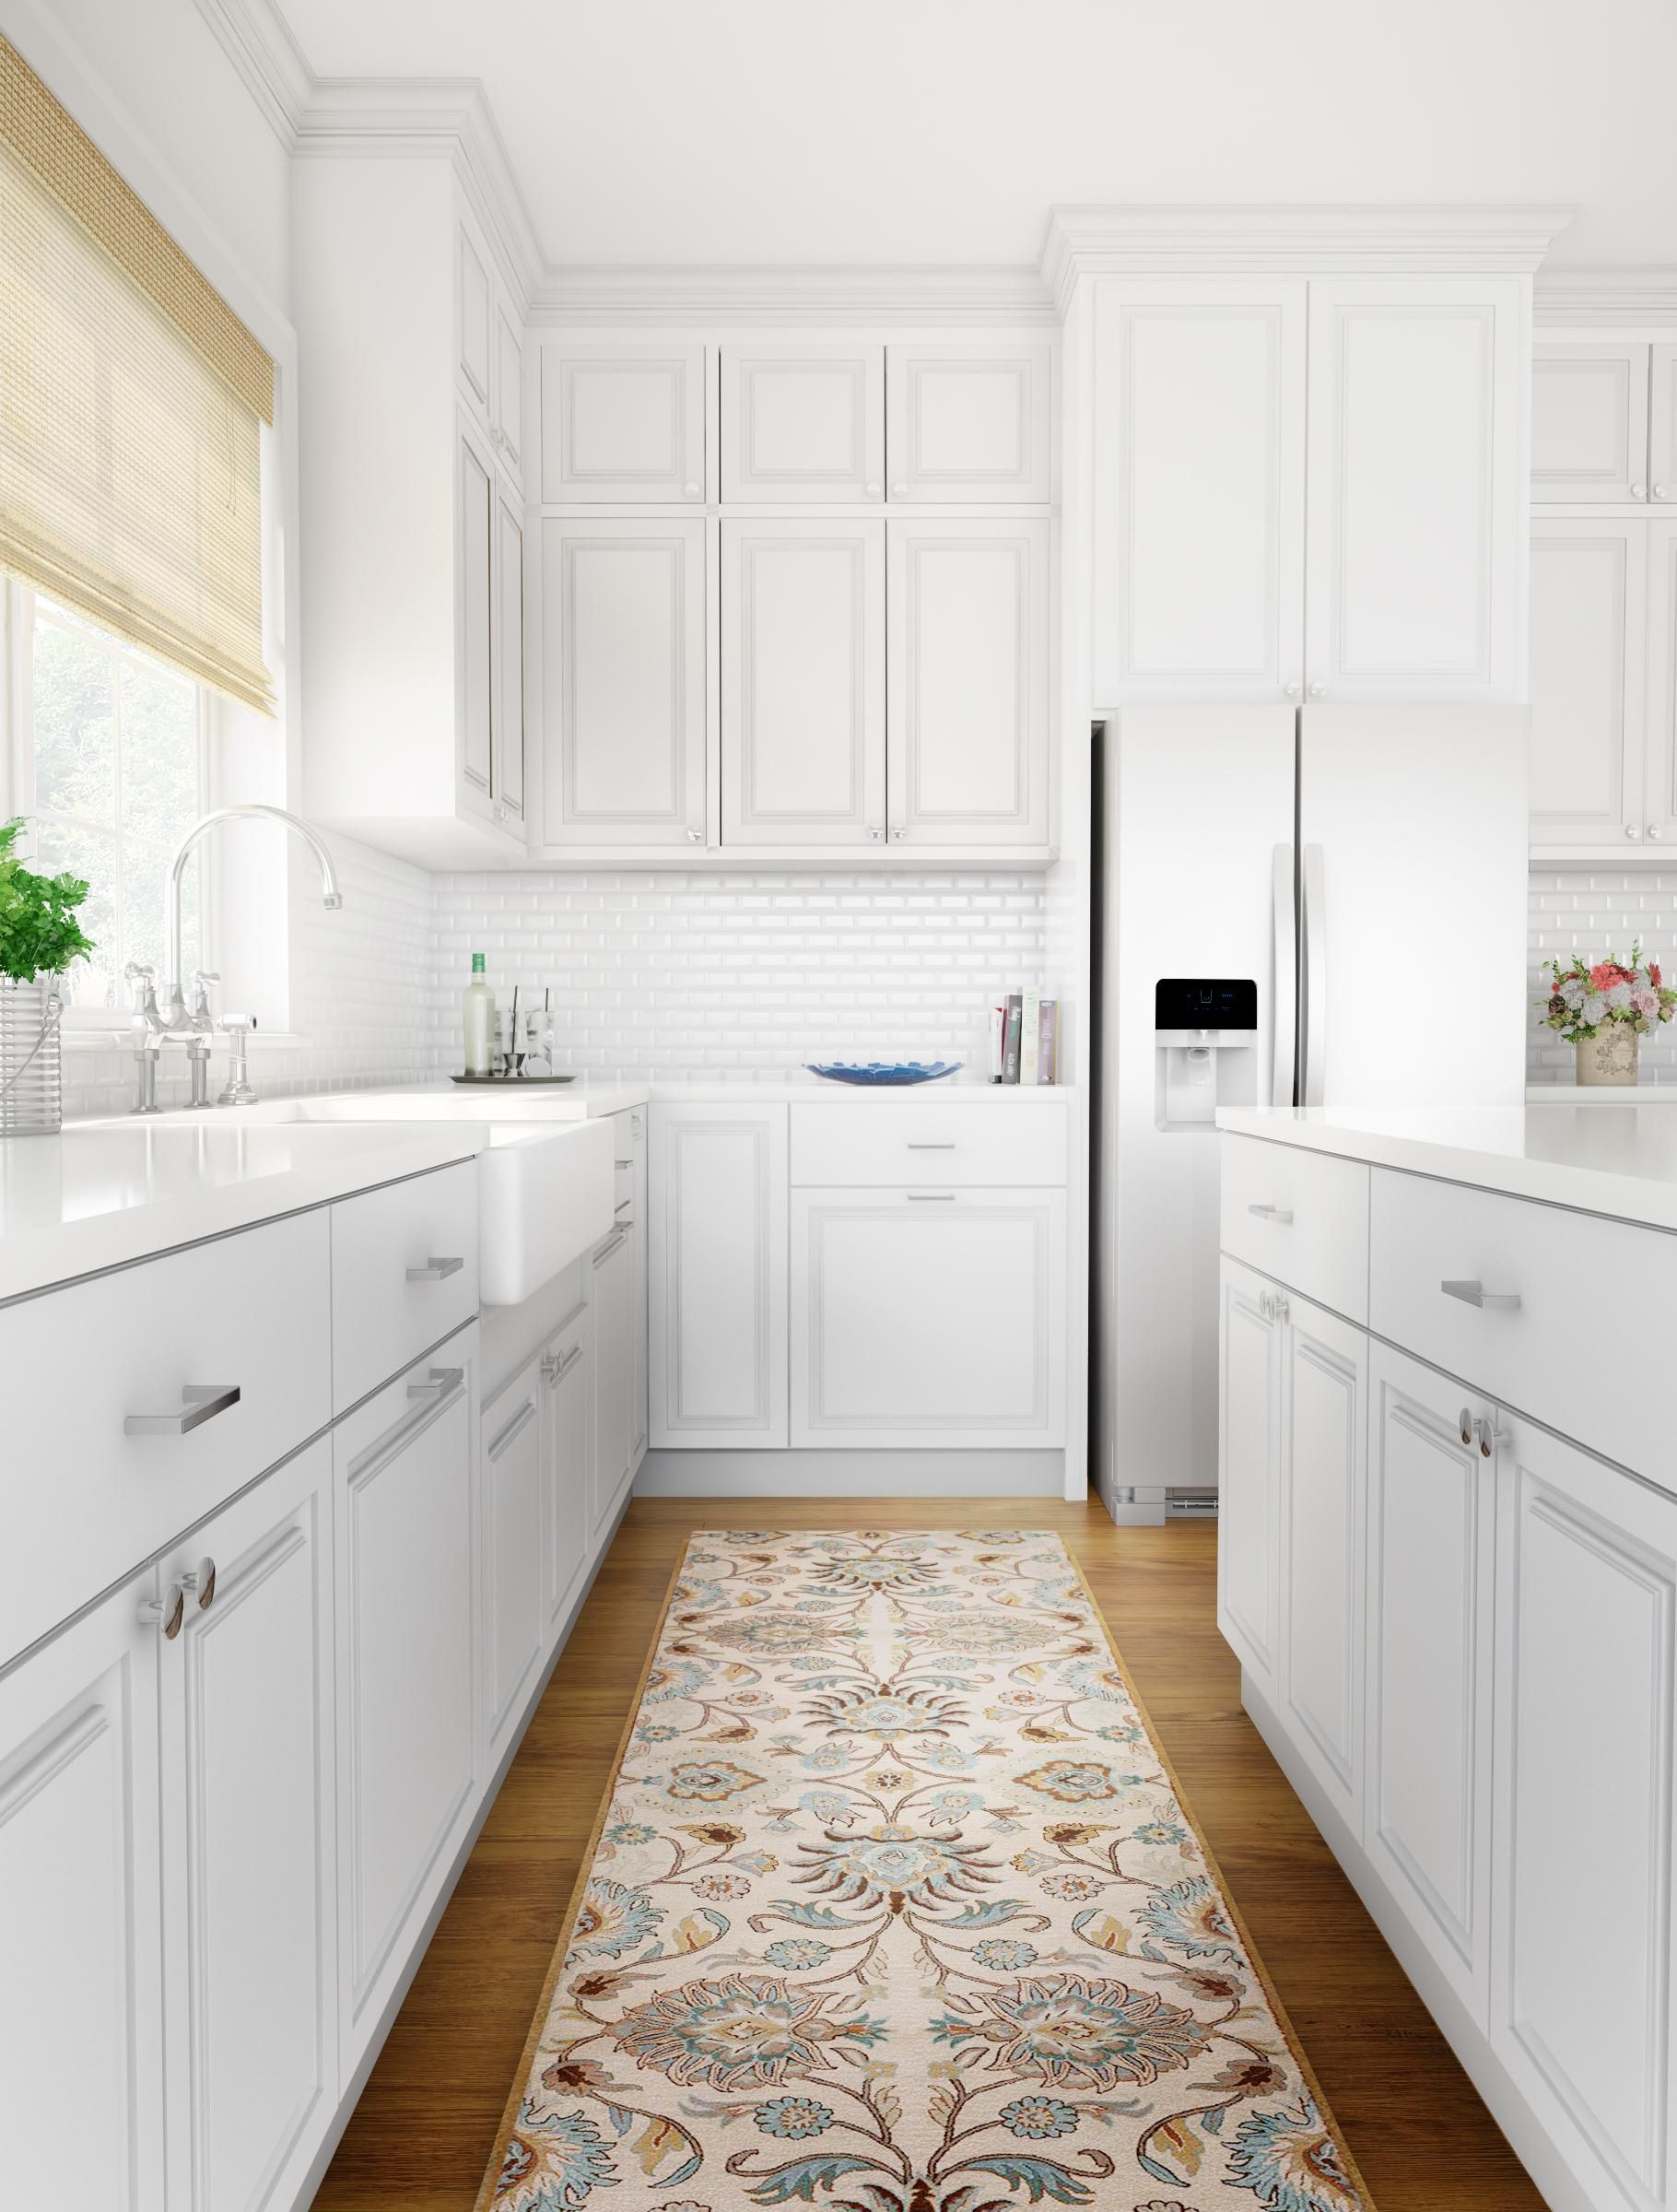 Kitchen Idea In London With Flat Panel Cabinets White Cabinets White Backsplash An Island Kitchen Renovation Classic White Kitchen White Kitchen Remodeling